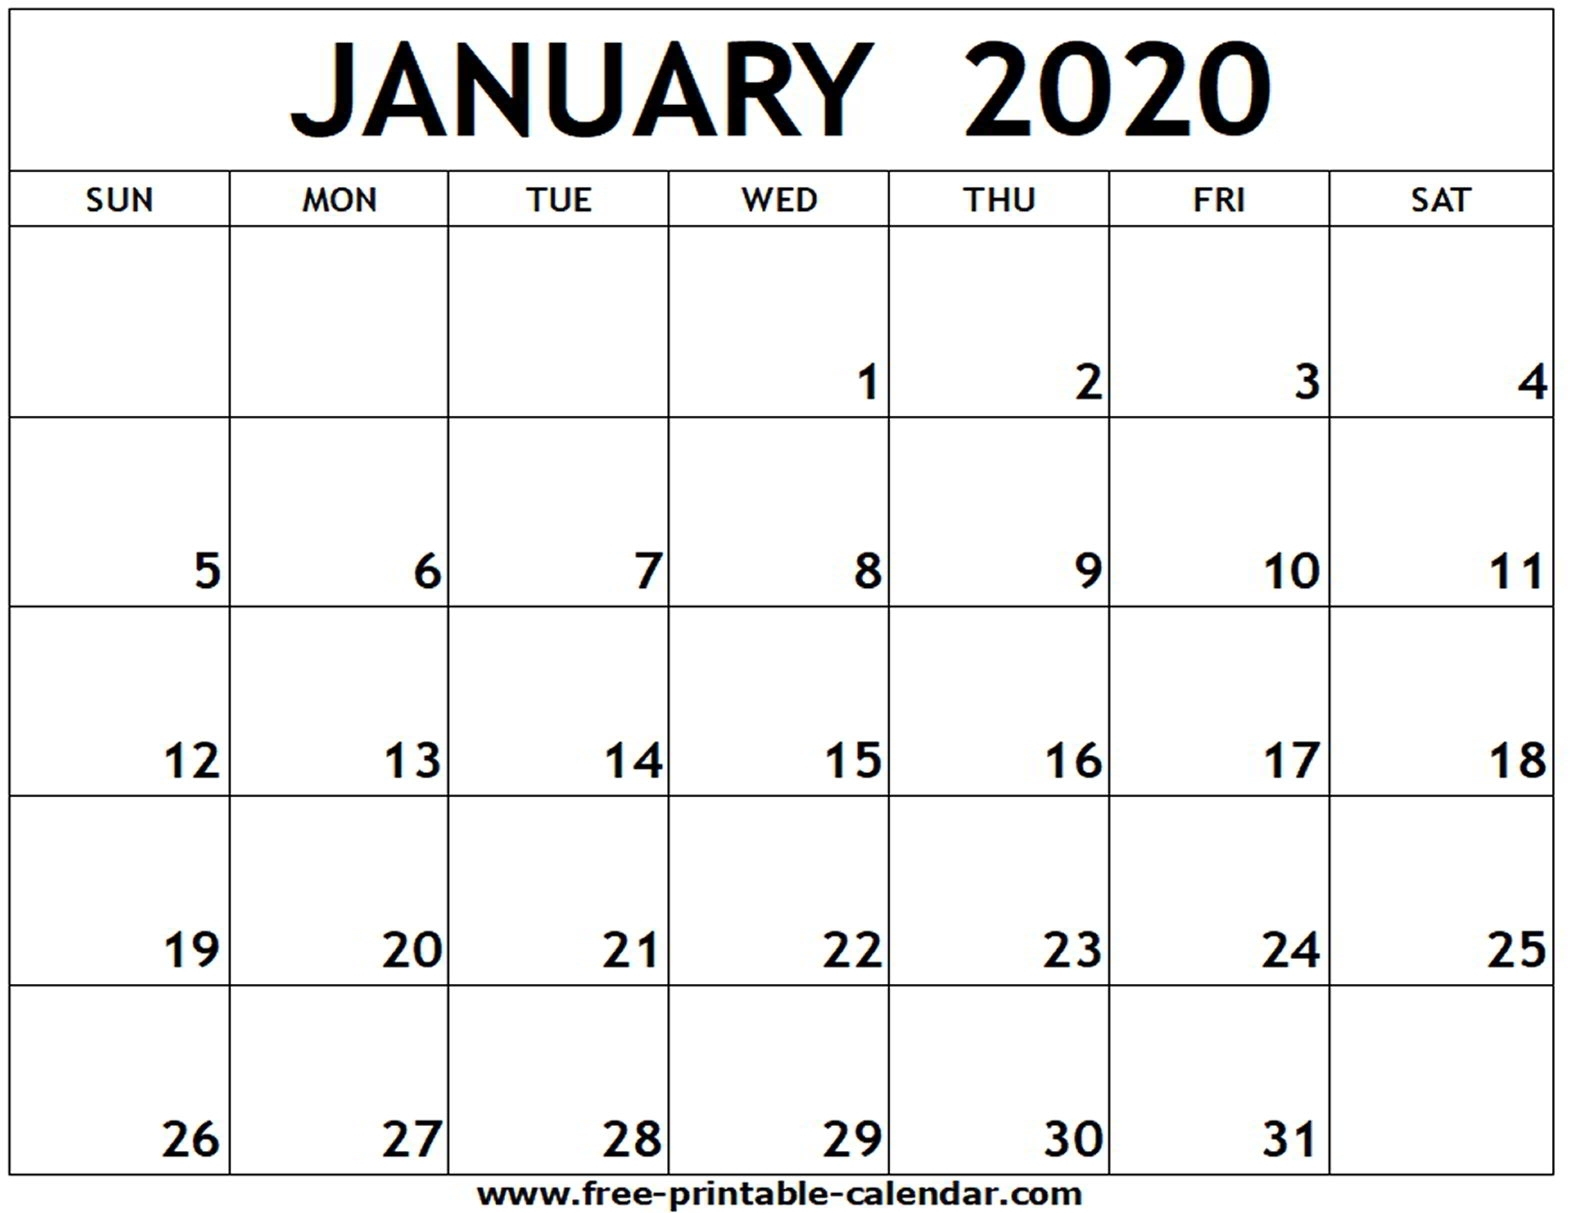 January 2020 Printable Calendar - Free-Printable-Calendar for Printable Fill In Calendar For 2020